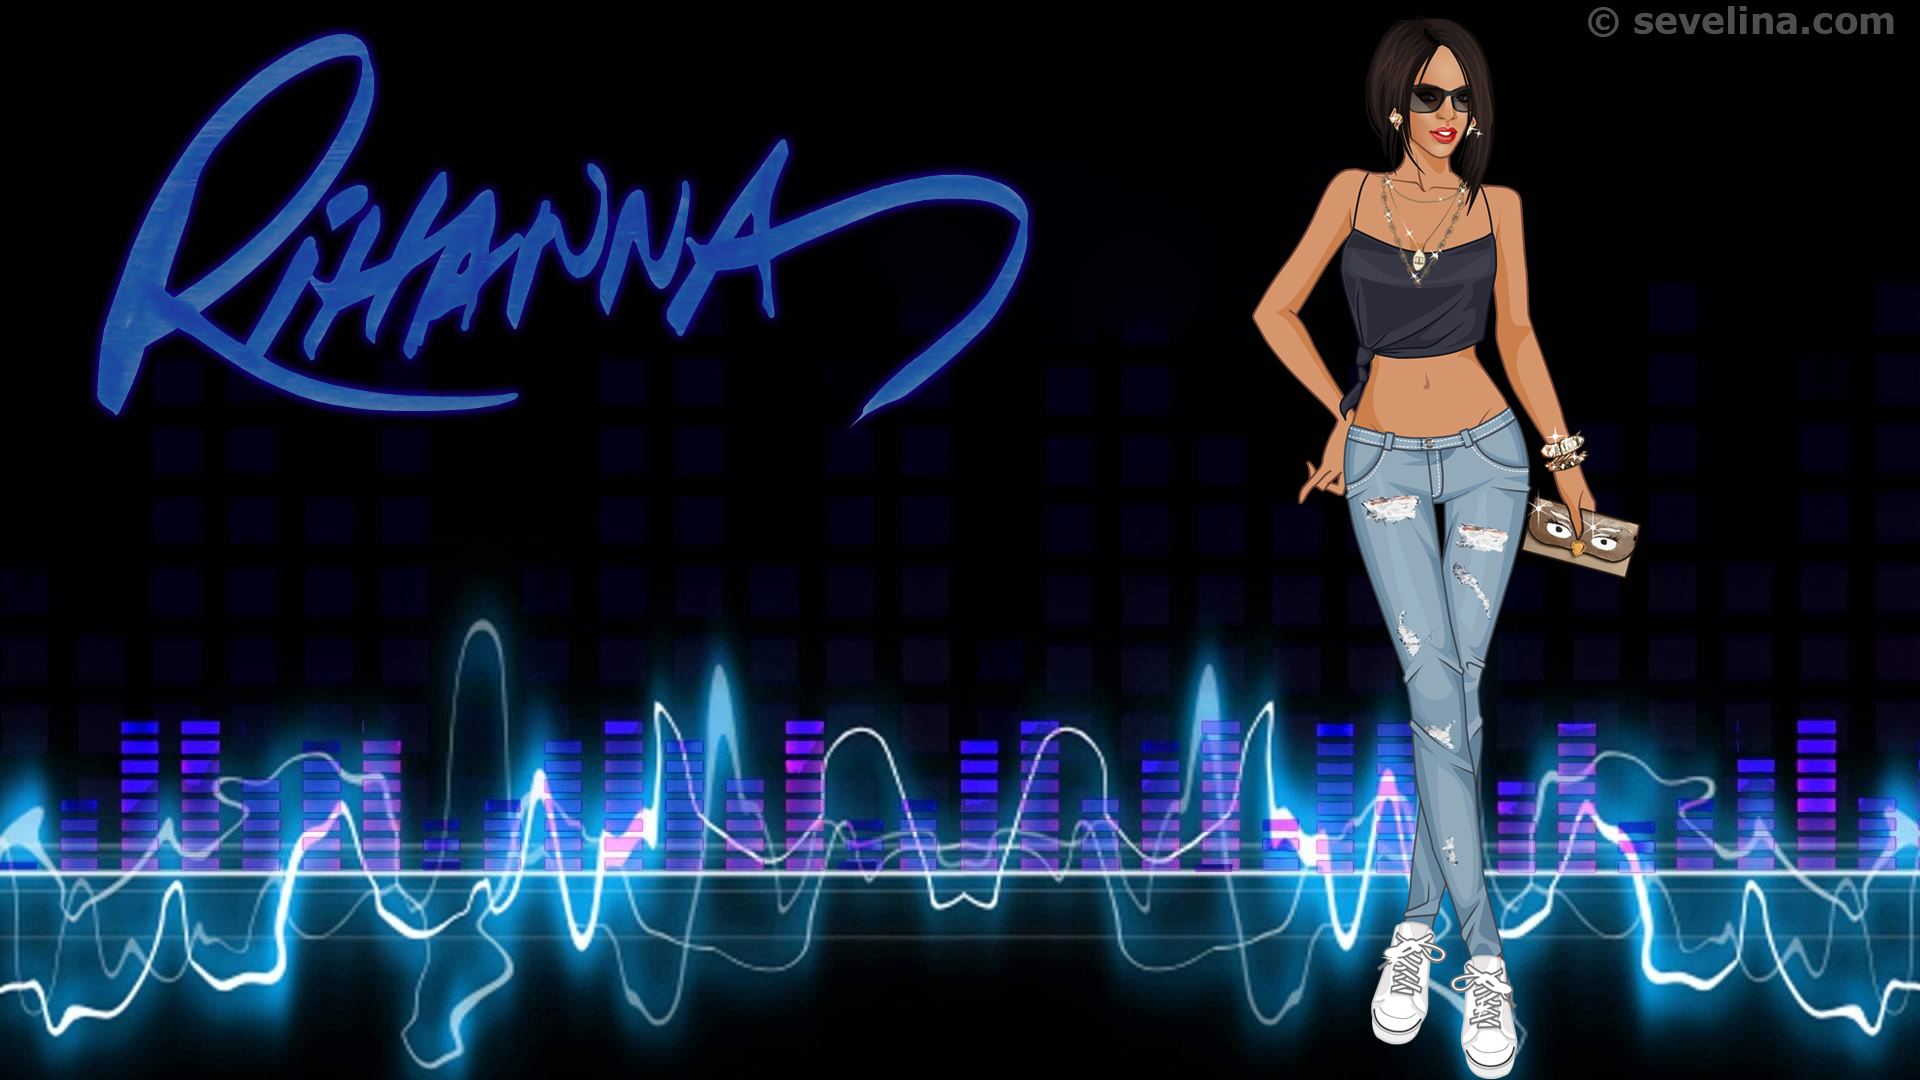 rihanna-wallpapers-2014-sevelina-dress-up-games-15